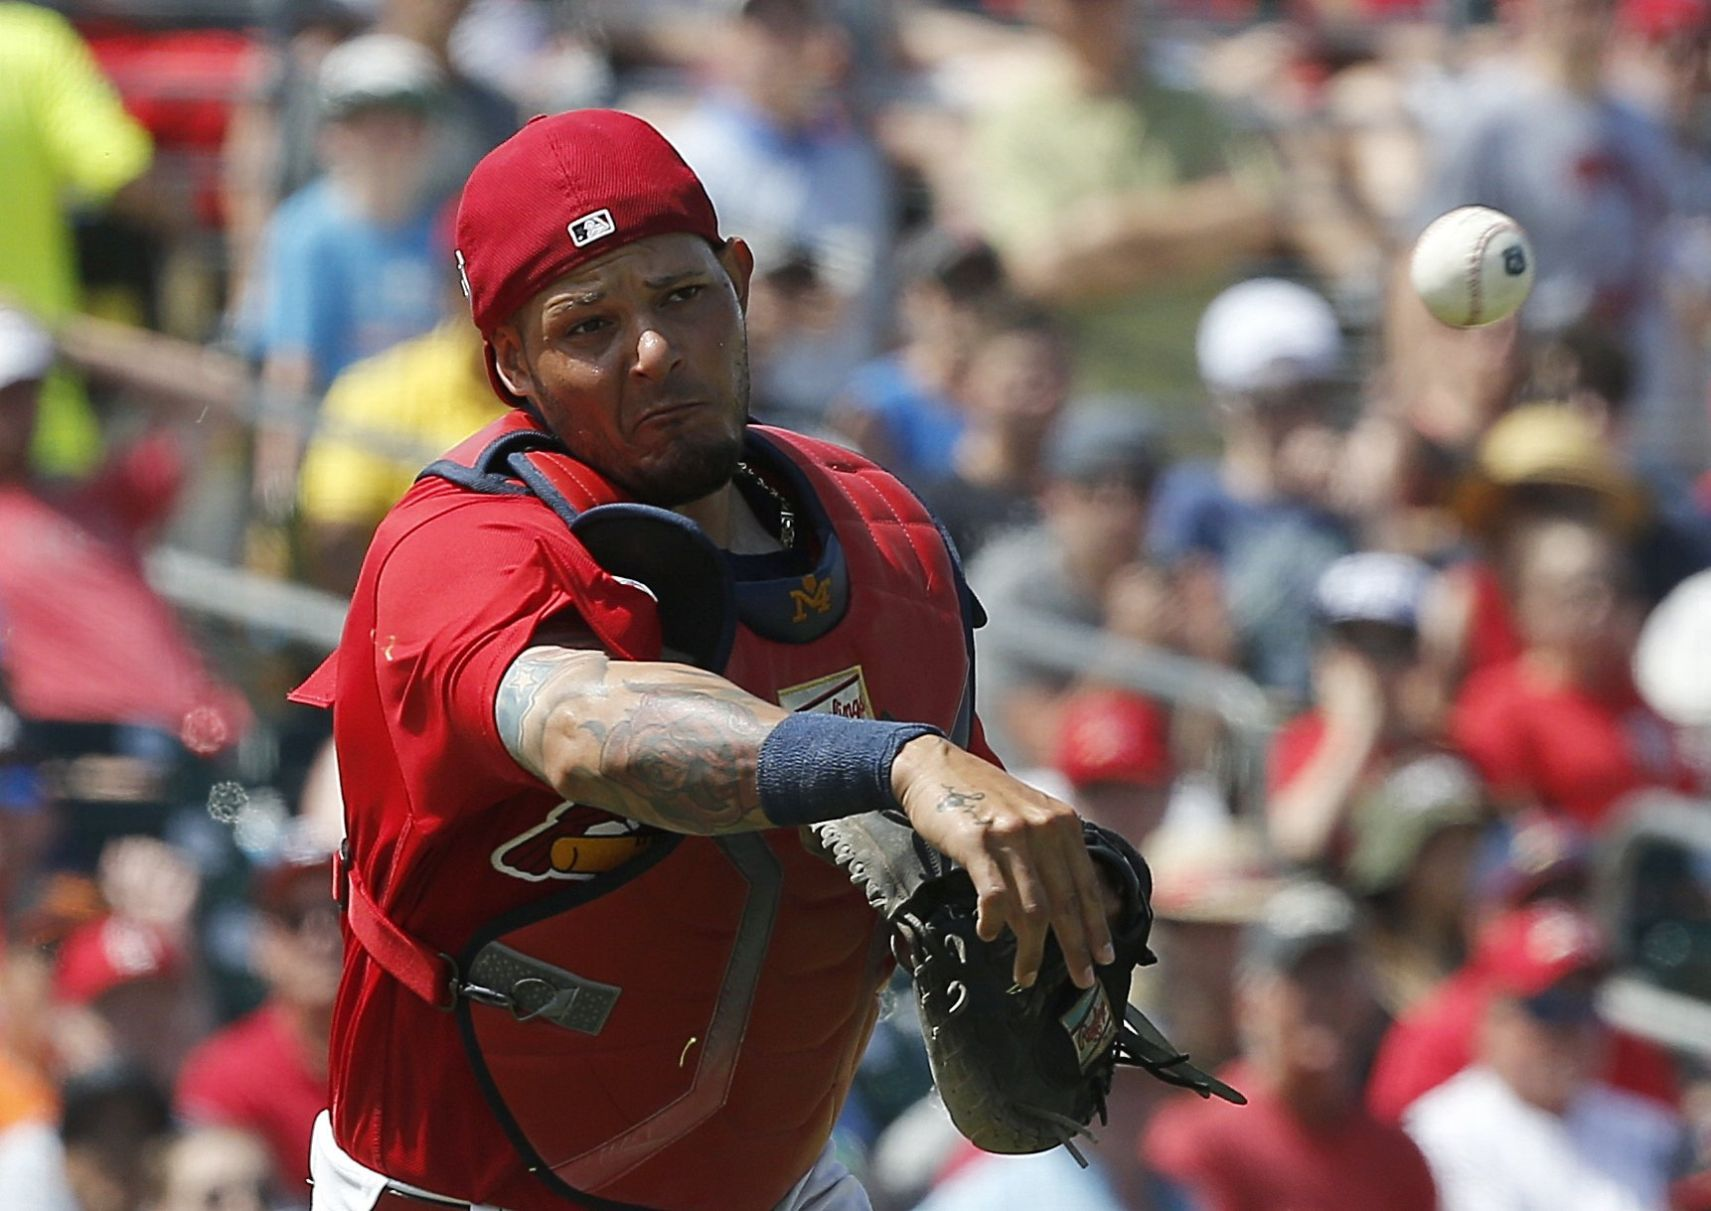 BenFred: Putting Molina's All-Star run into perspective